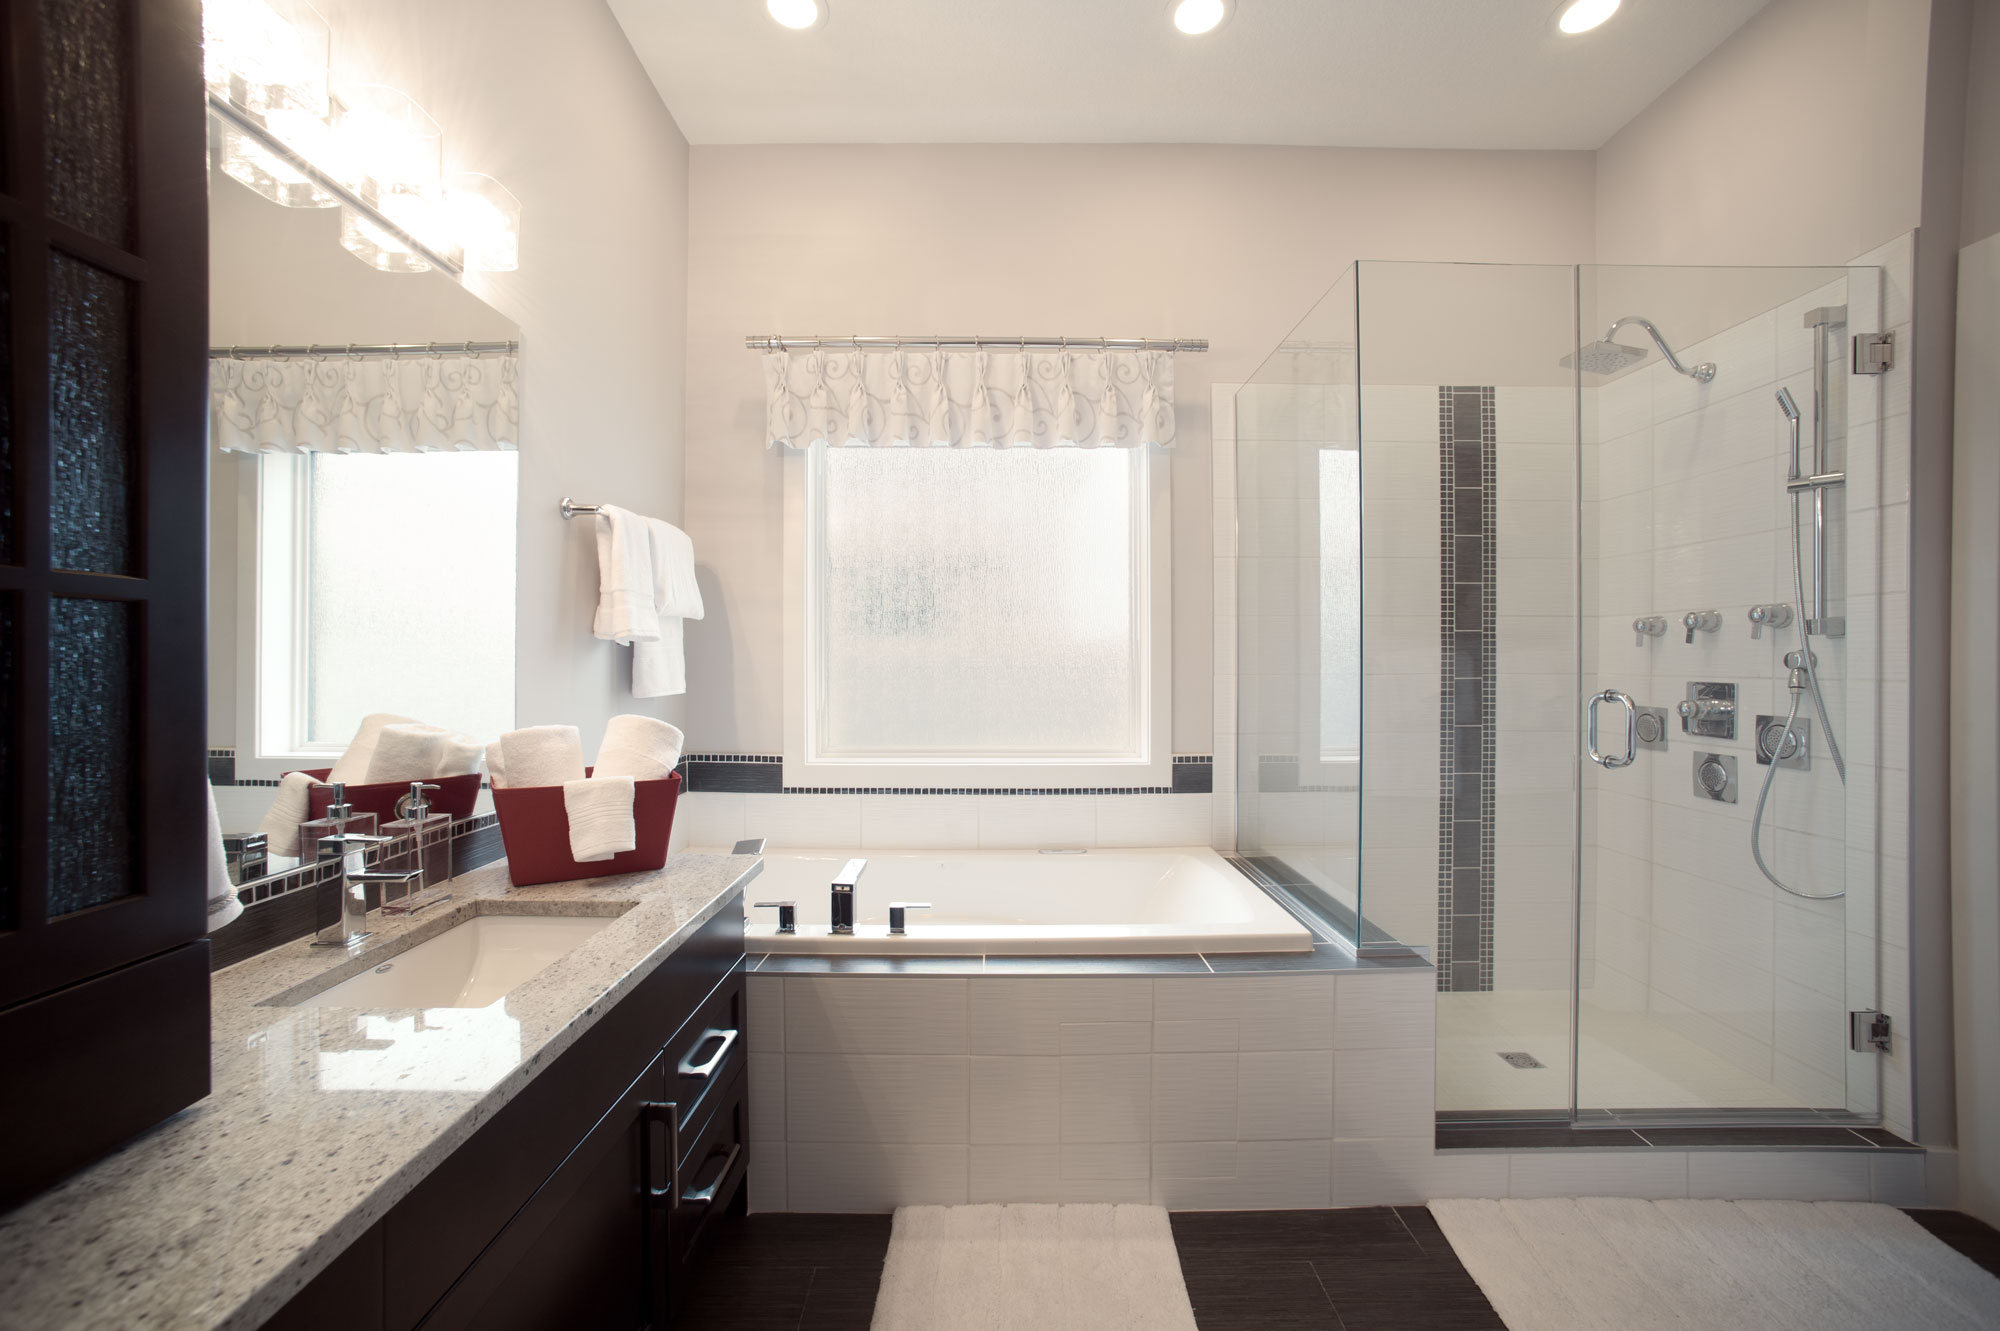 Ensuite Bathroom Edmonton new homes in edmonton - urbanity custom homes ltd